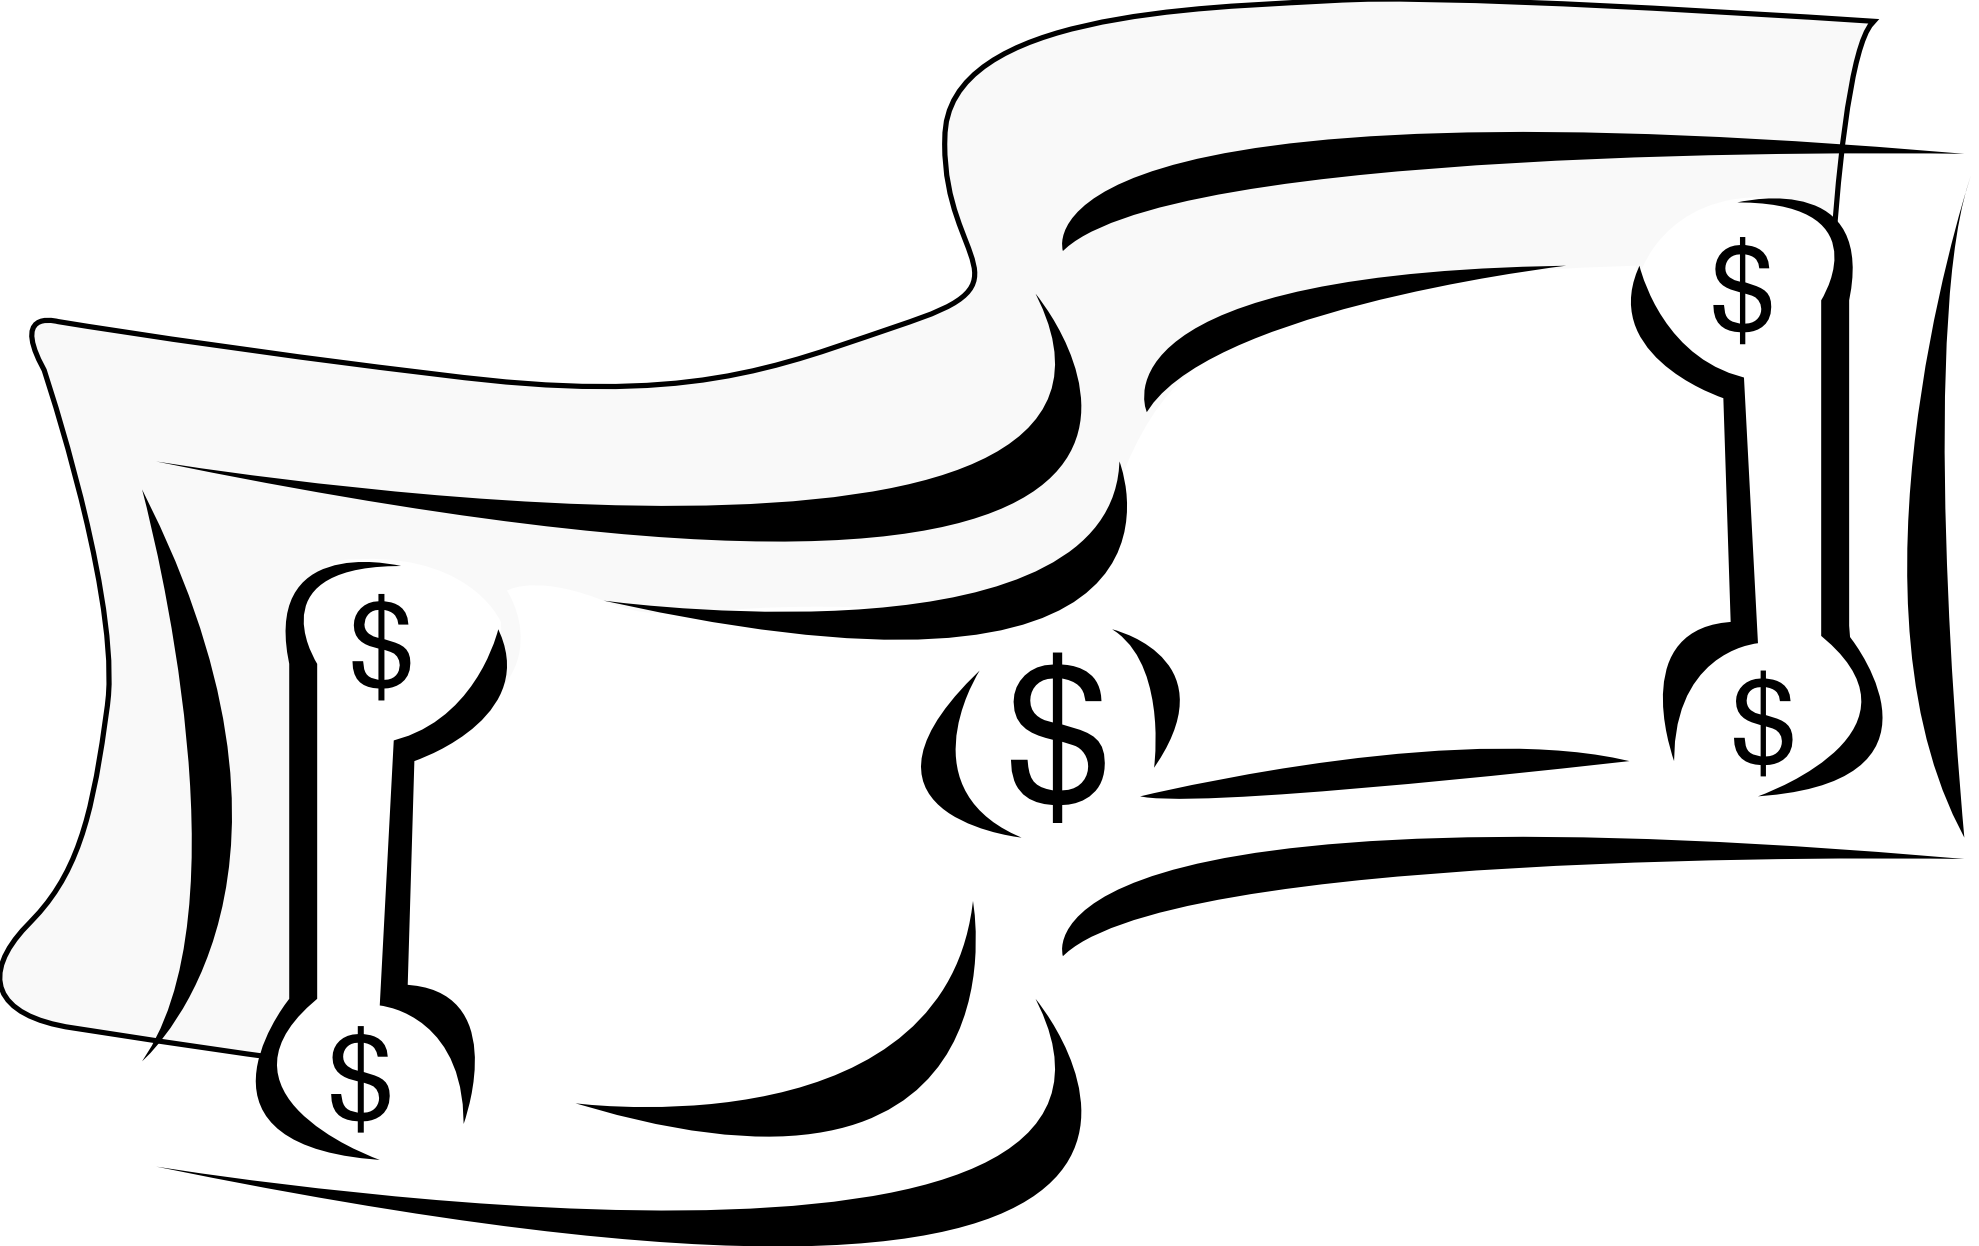 Dollars clipart powerpoint. Dollar sign black and